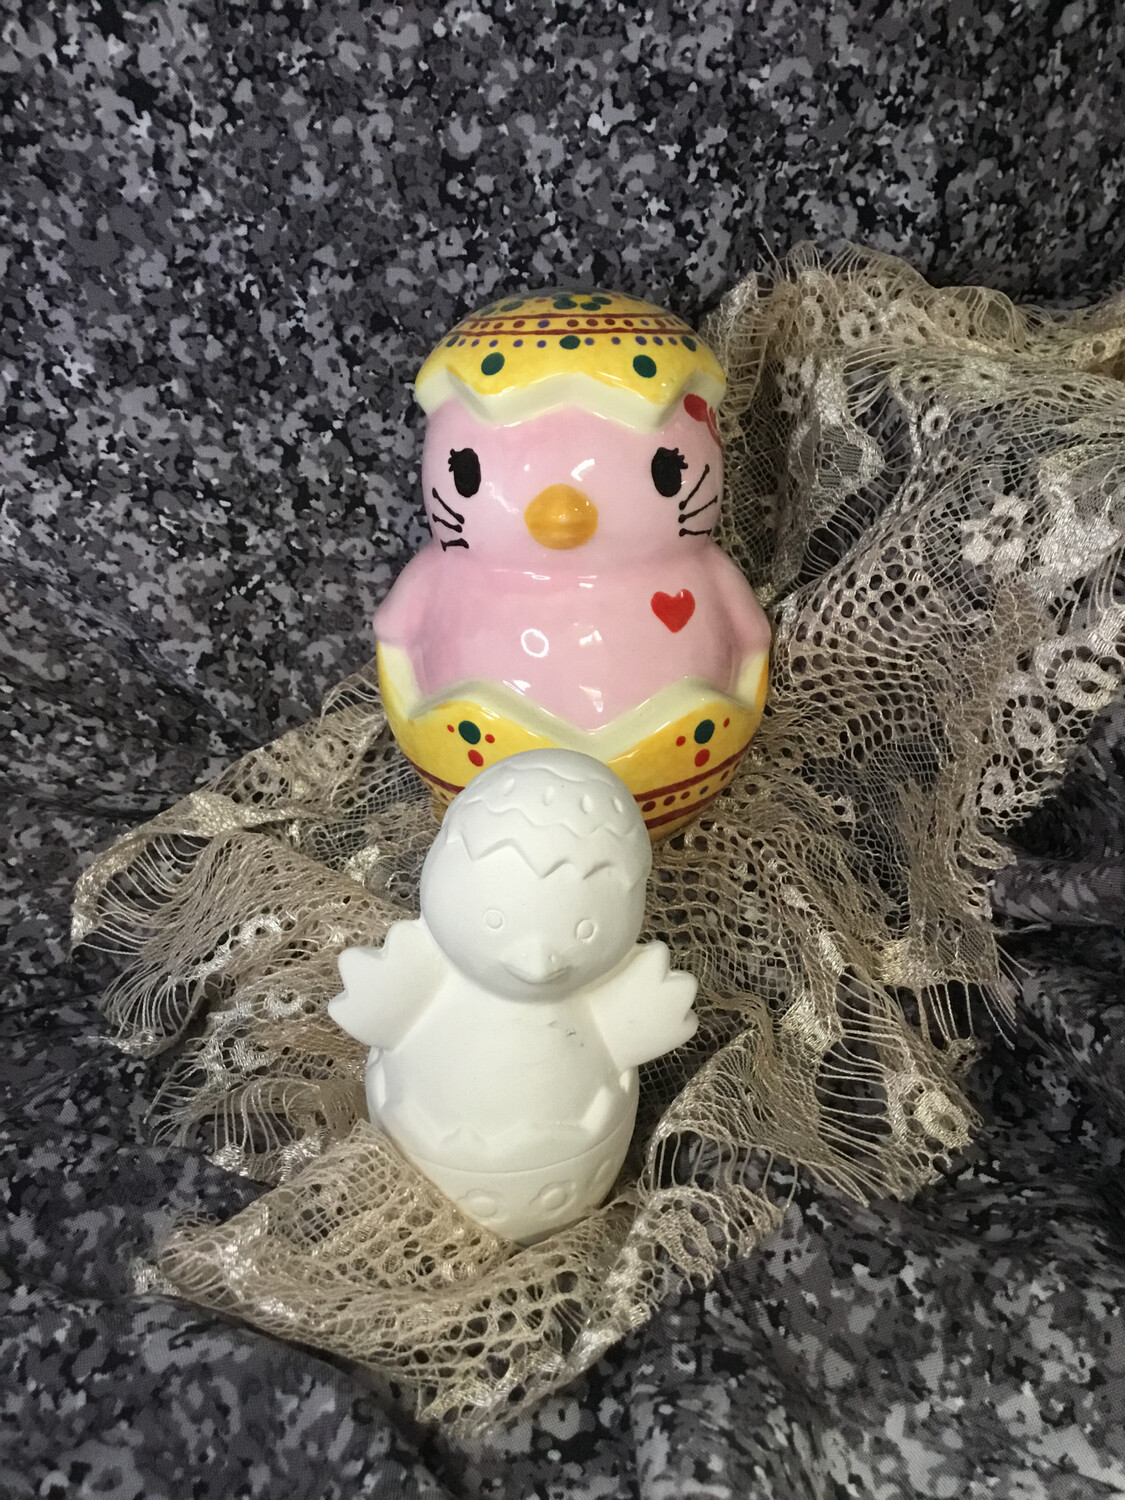 Chick in an Egg Figurine